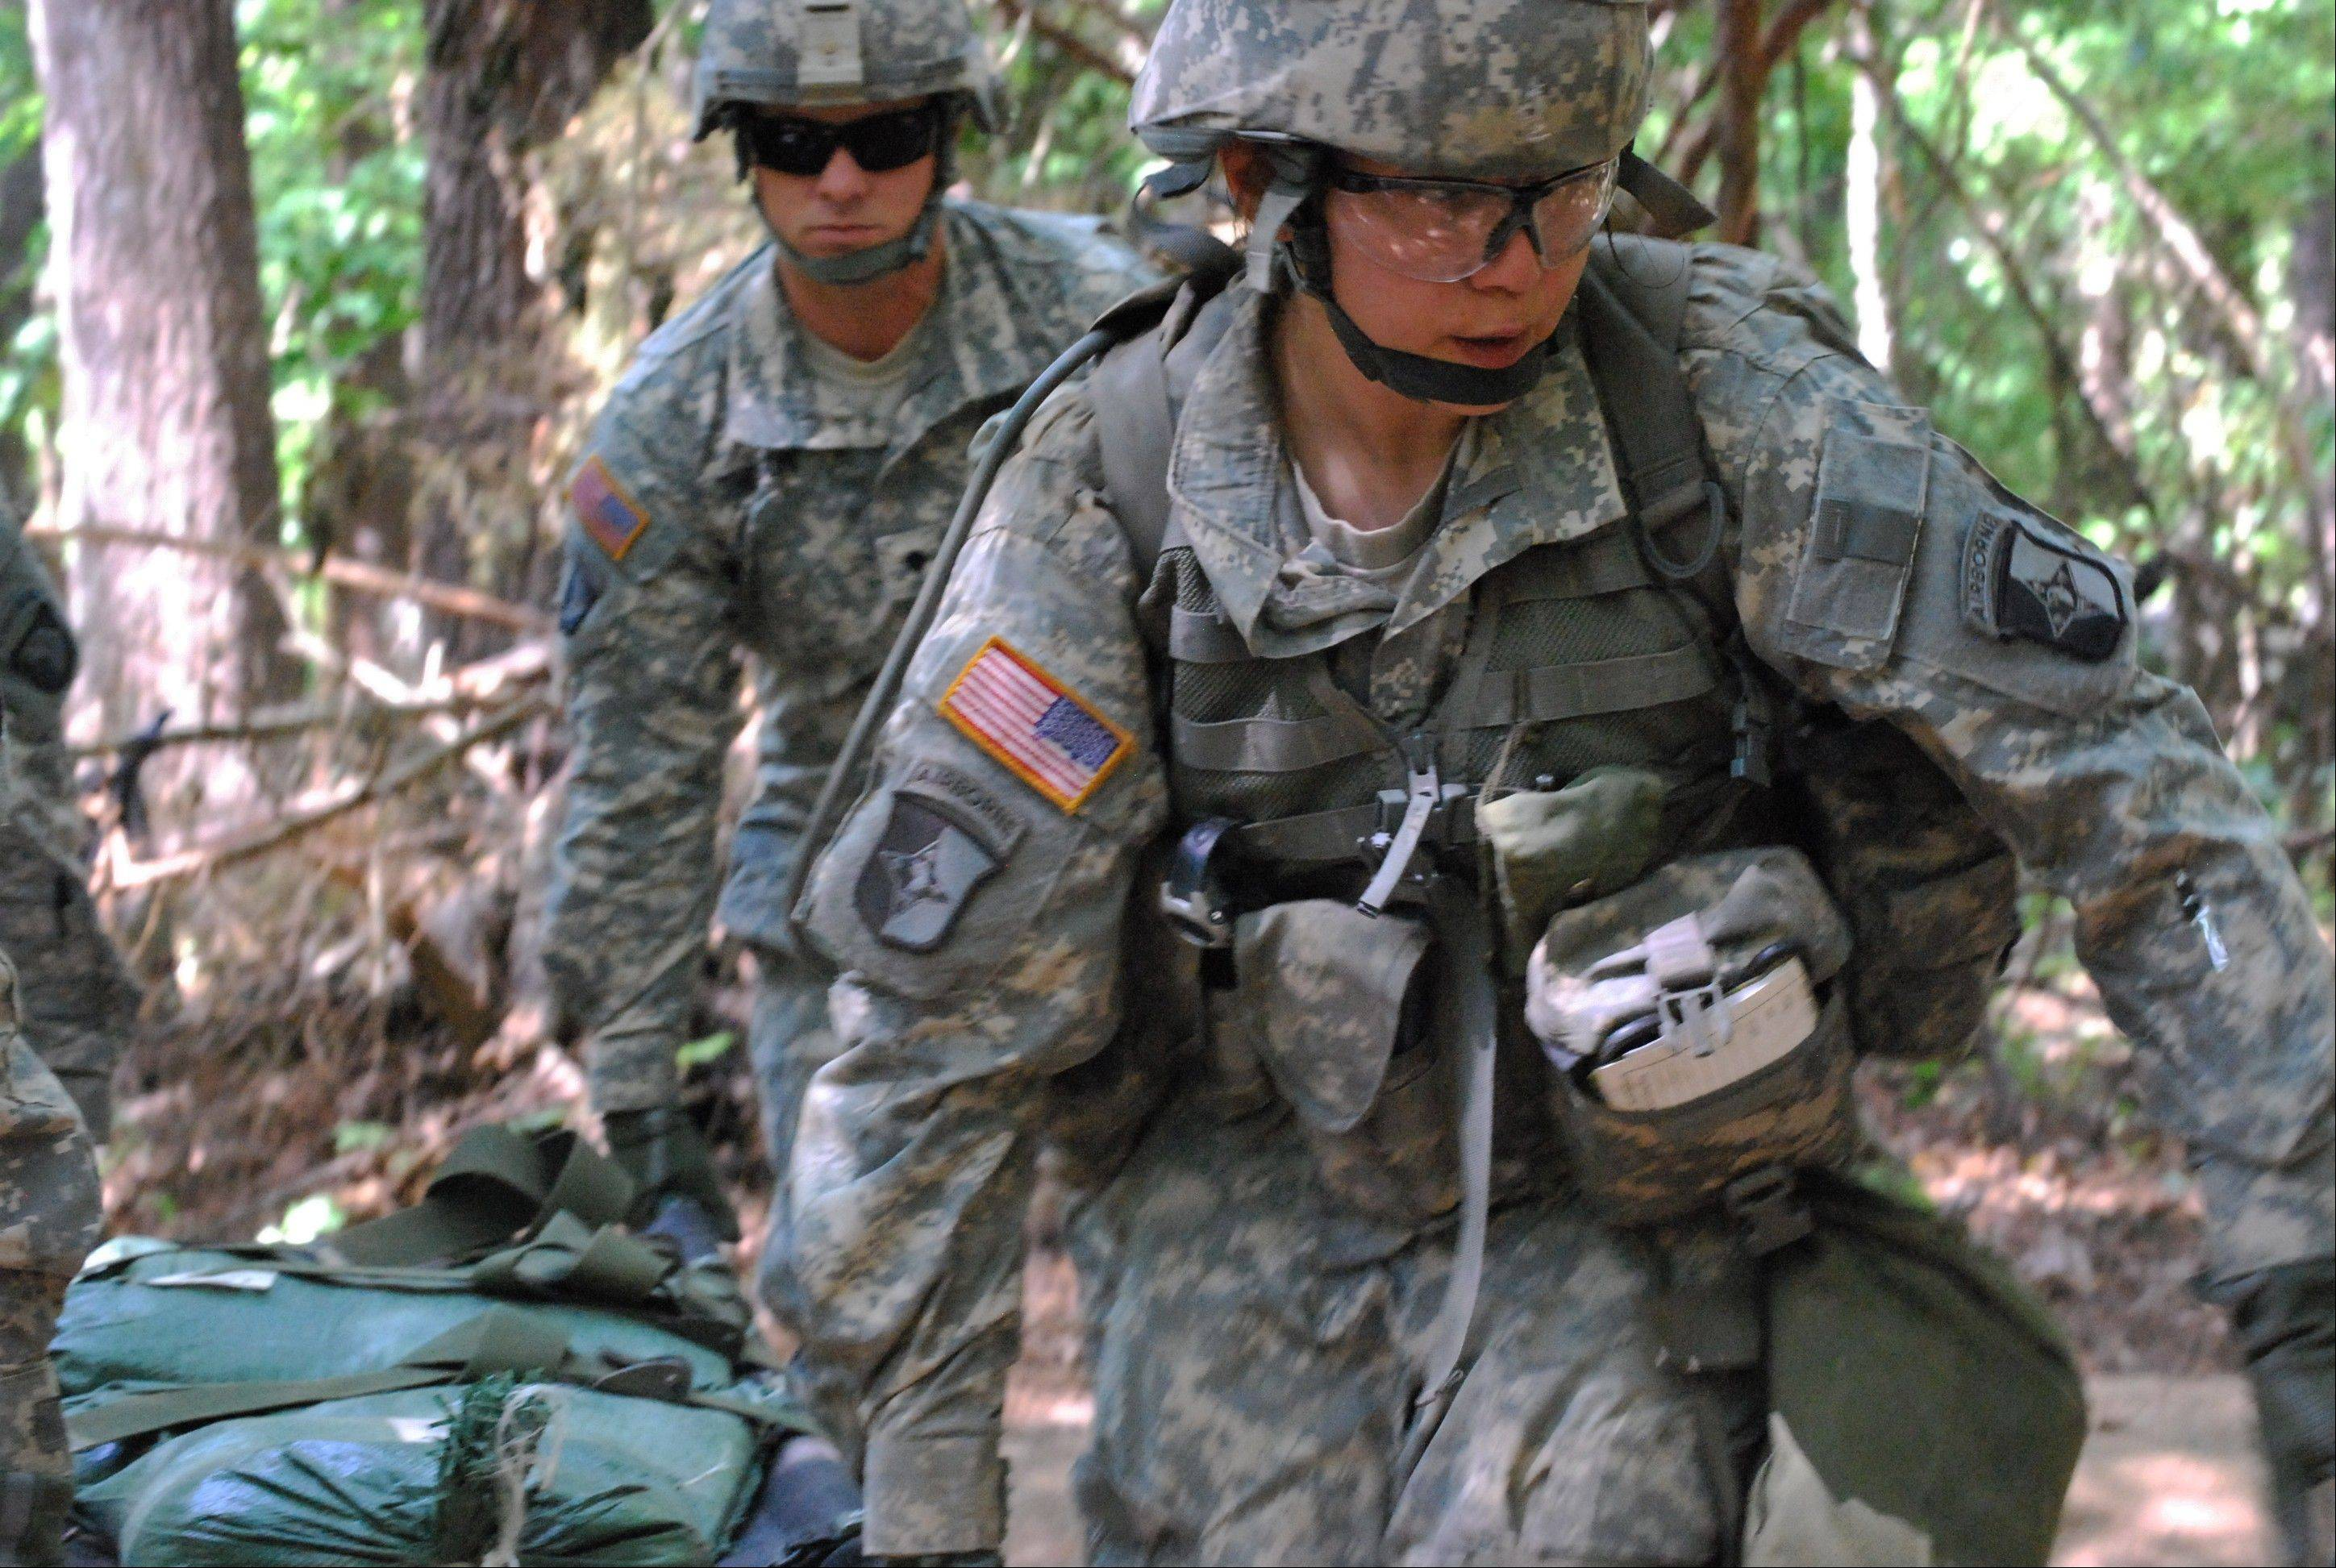 Women in combat: Good to go if they meet standards